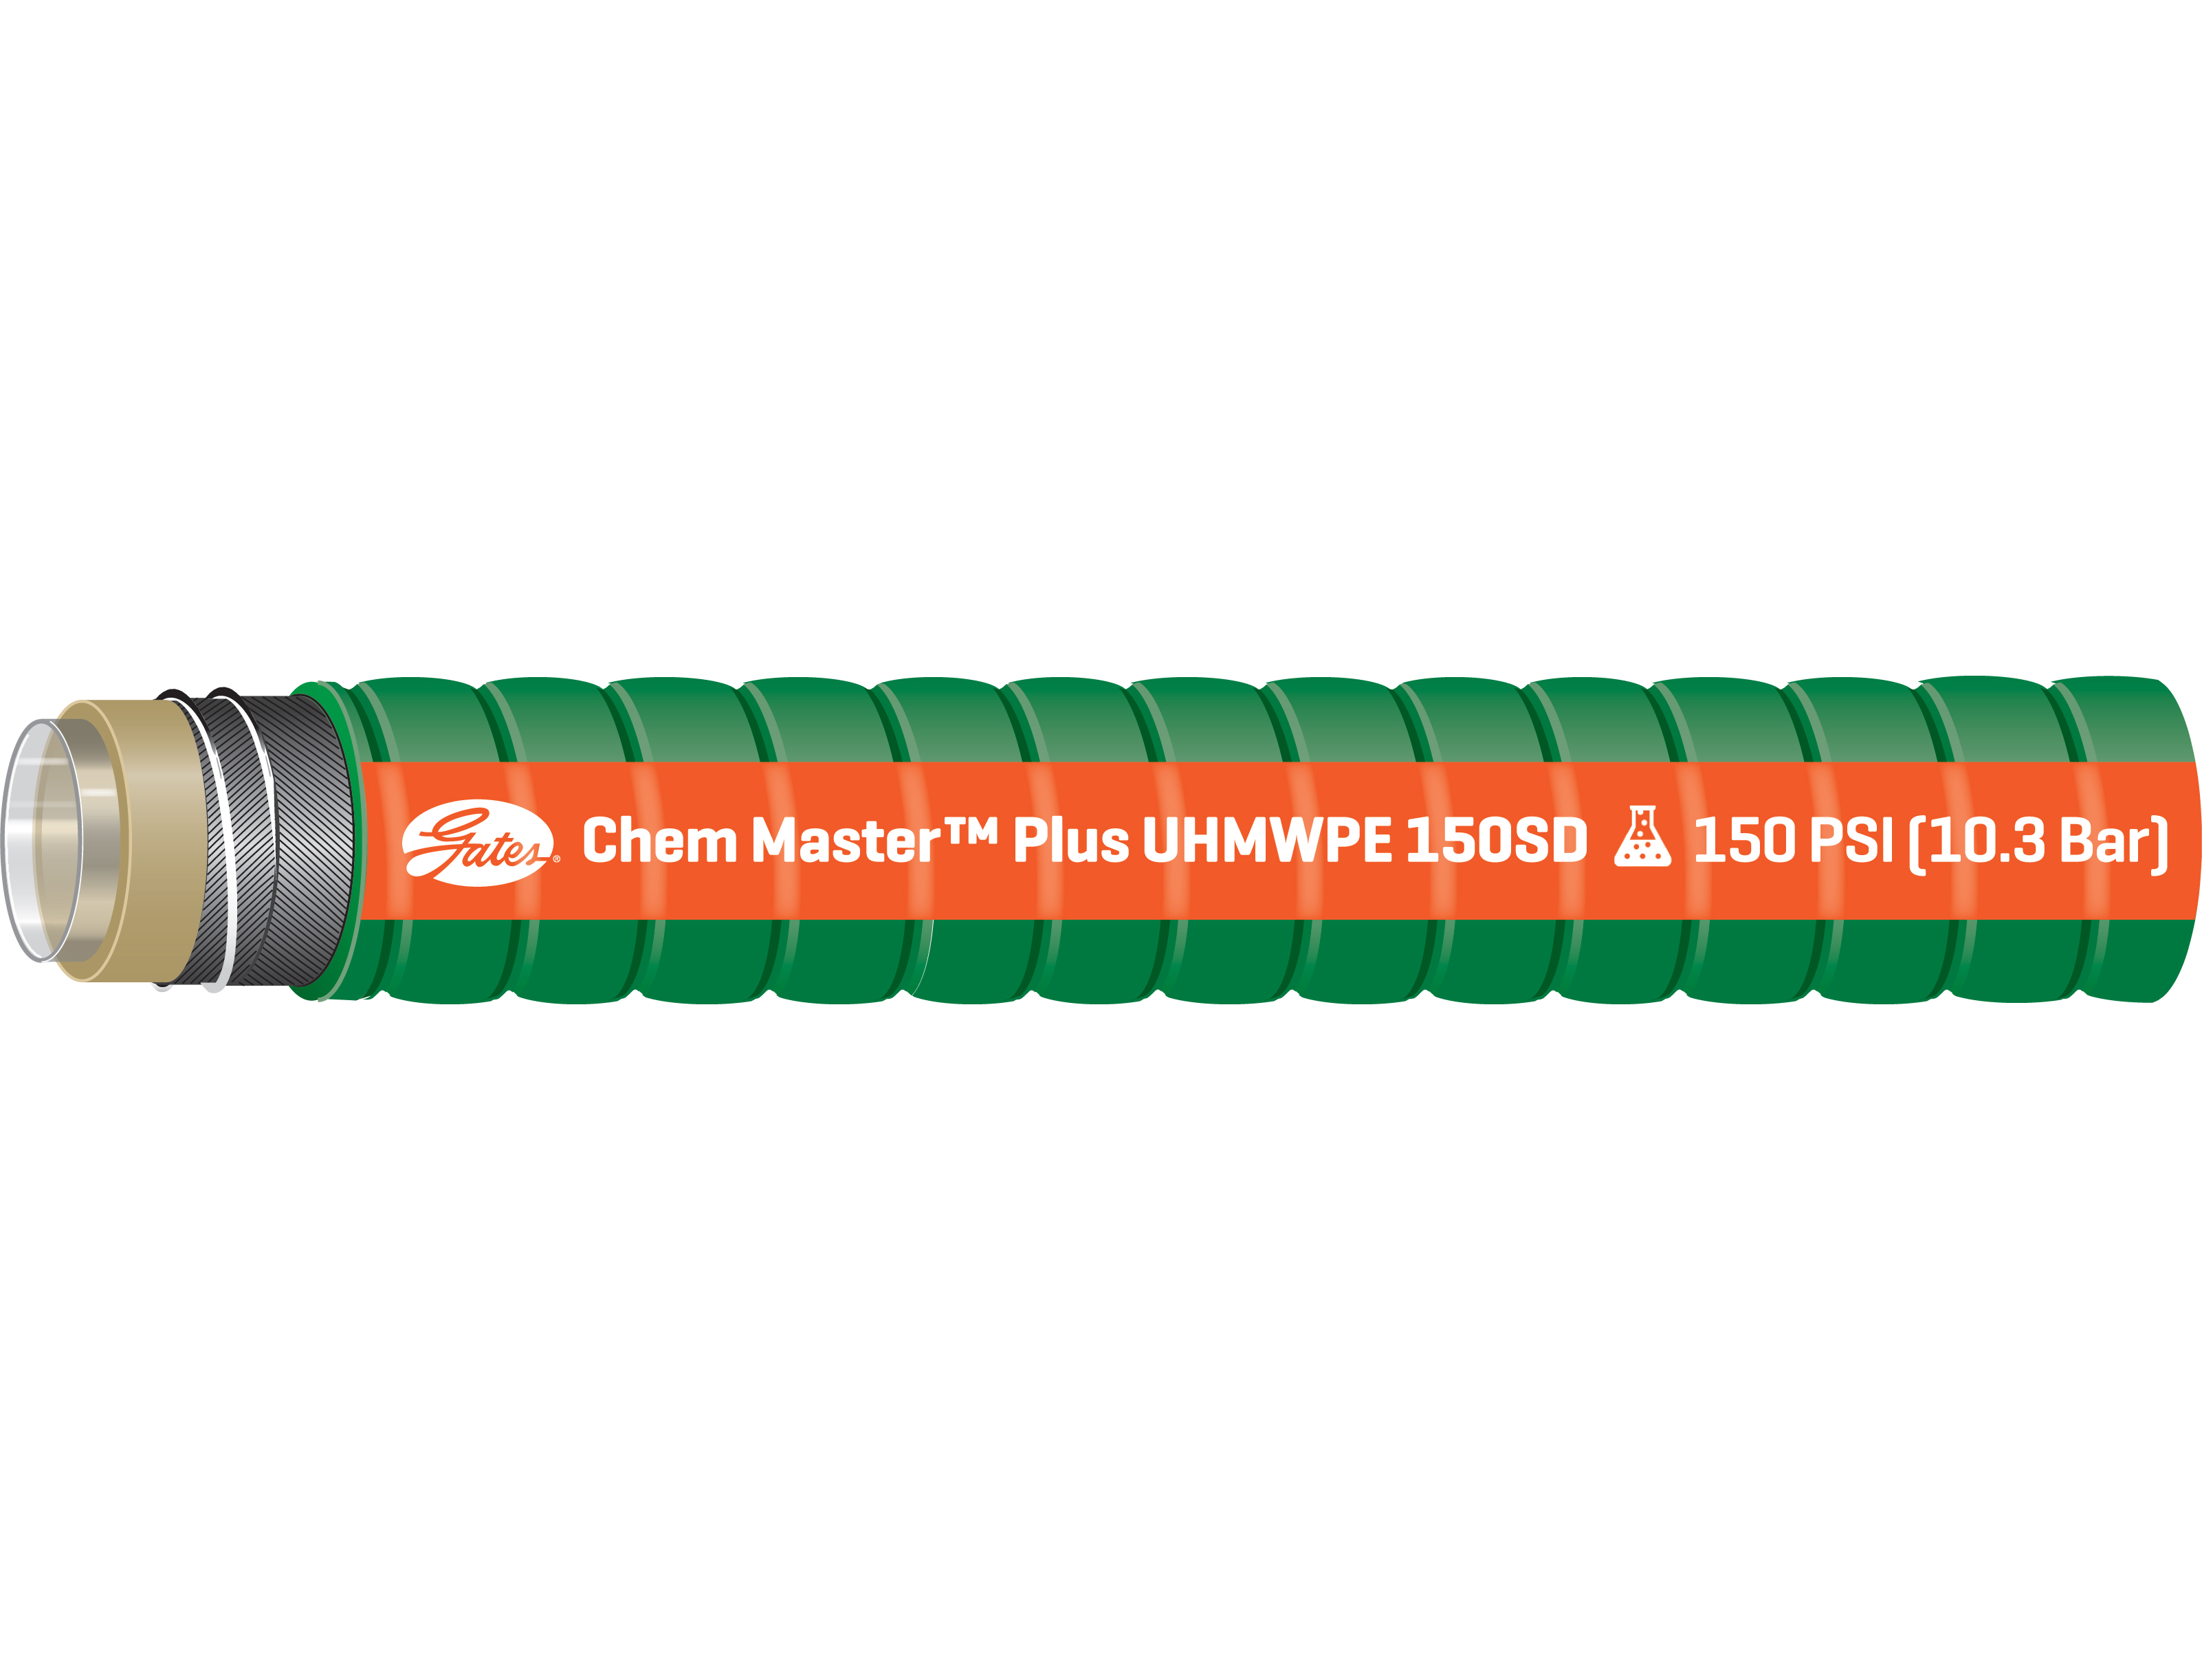 Chem Master UHMWPE Hose With High Chemical Resistance